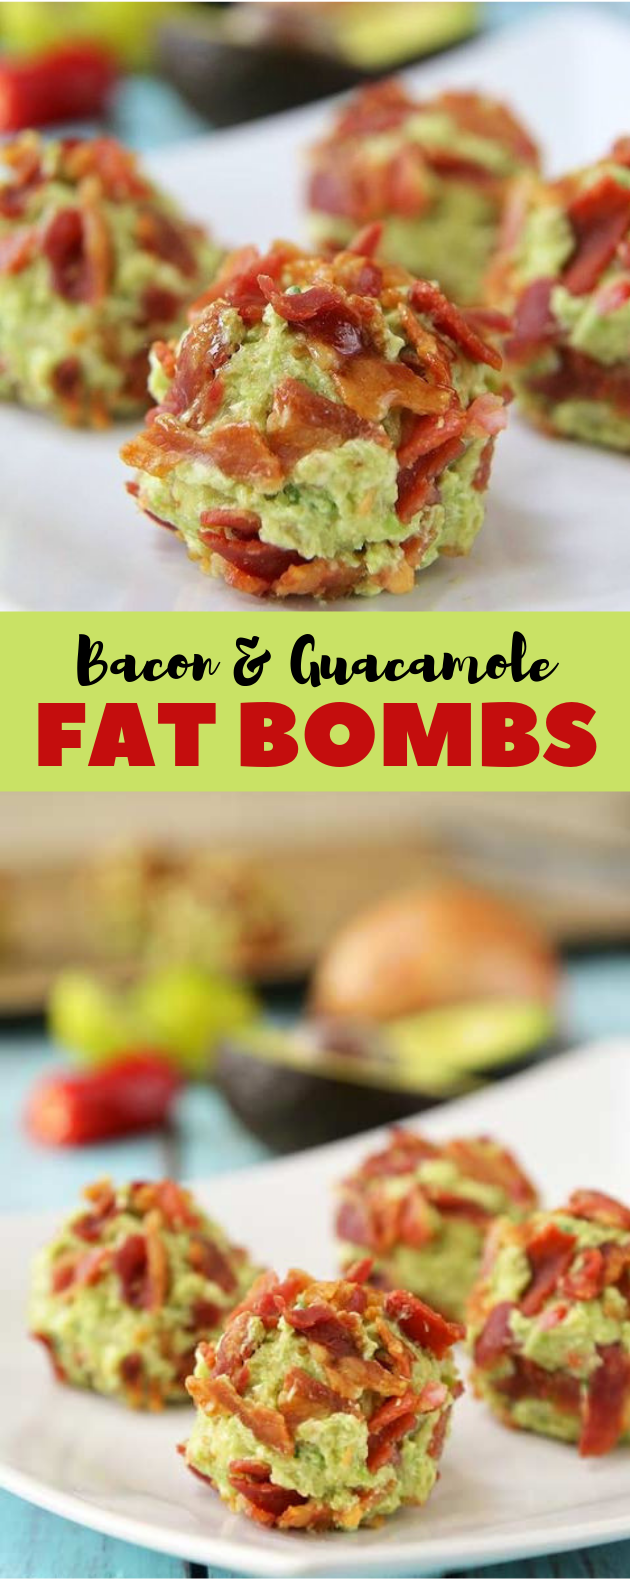 Bacon & Guacamole Fat Bombs #Keto #LowCarb #fatbombs #healthy #appetizers